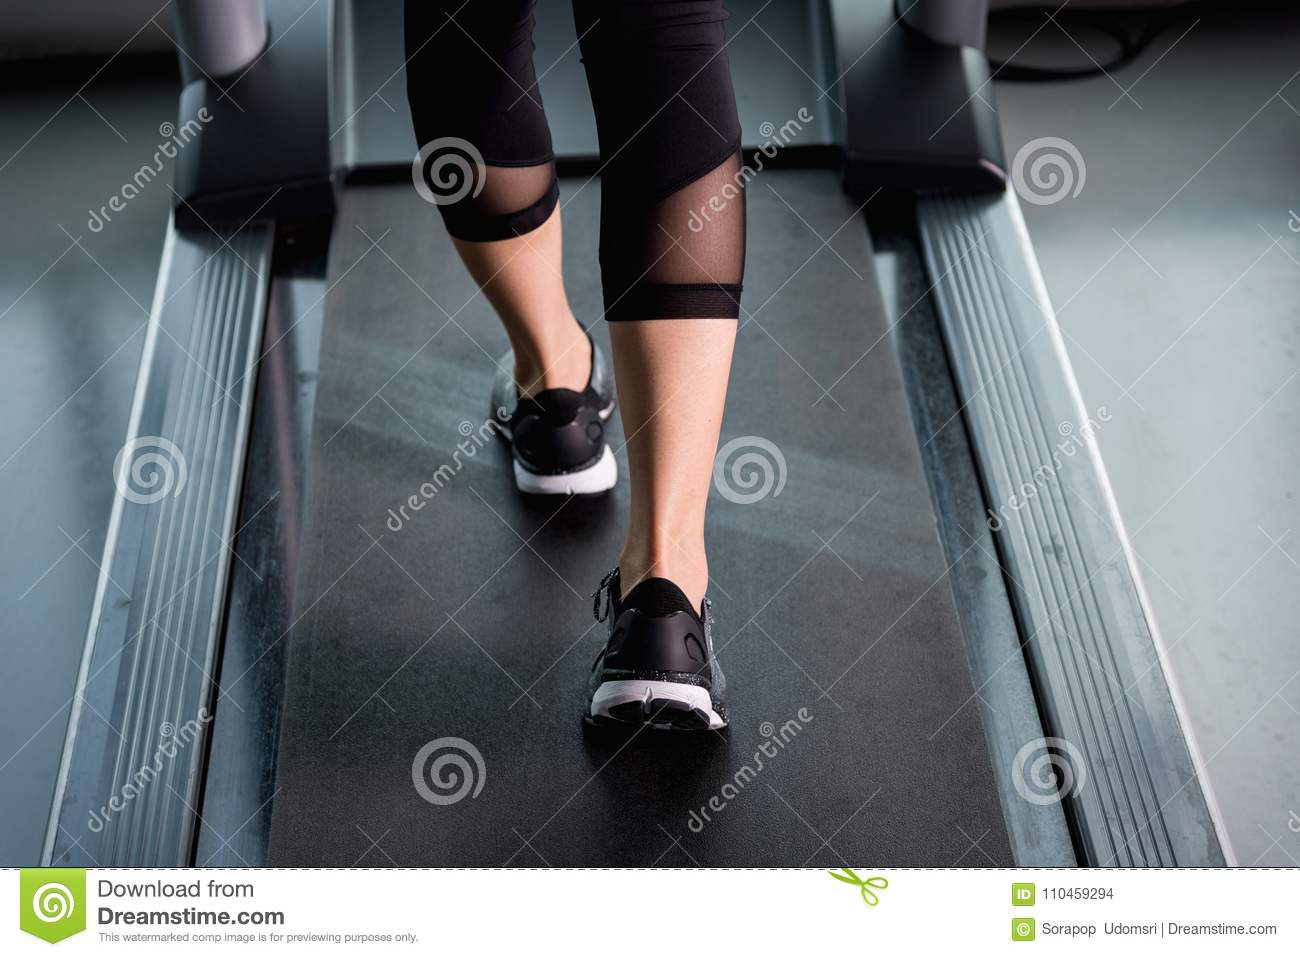 Female Muscular Feet In Sneakers Running On Treadmill At Gym Stock